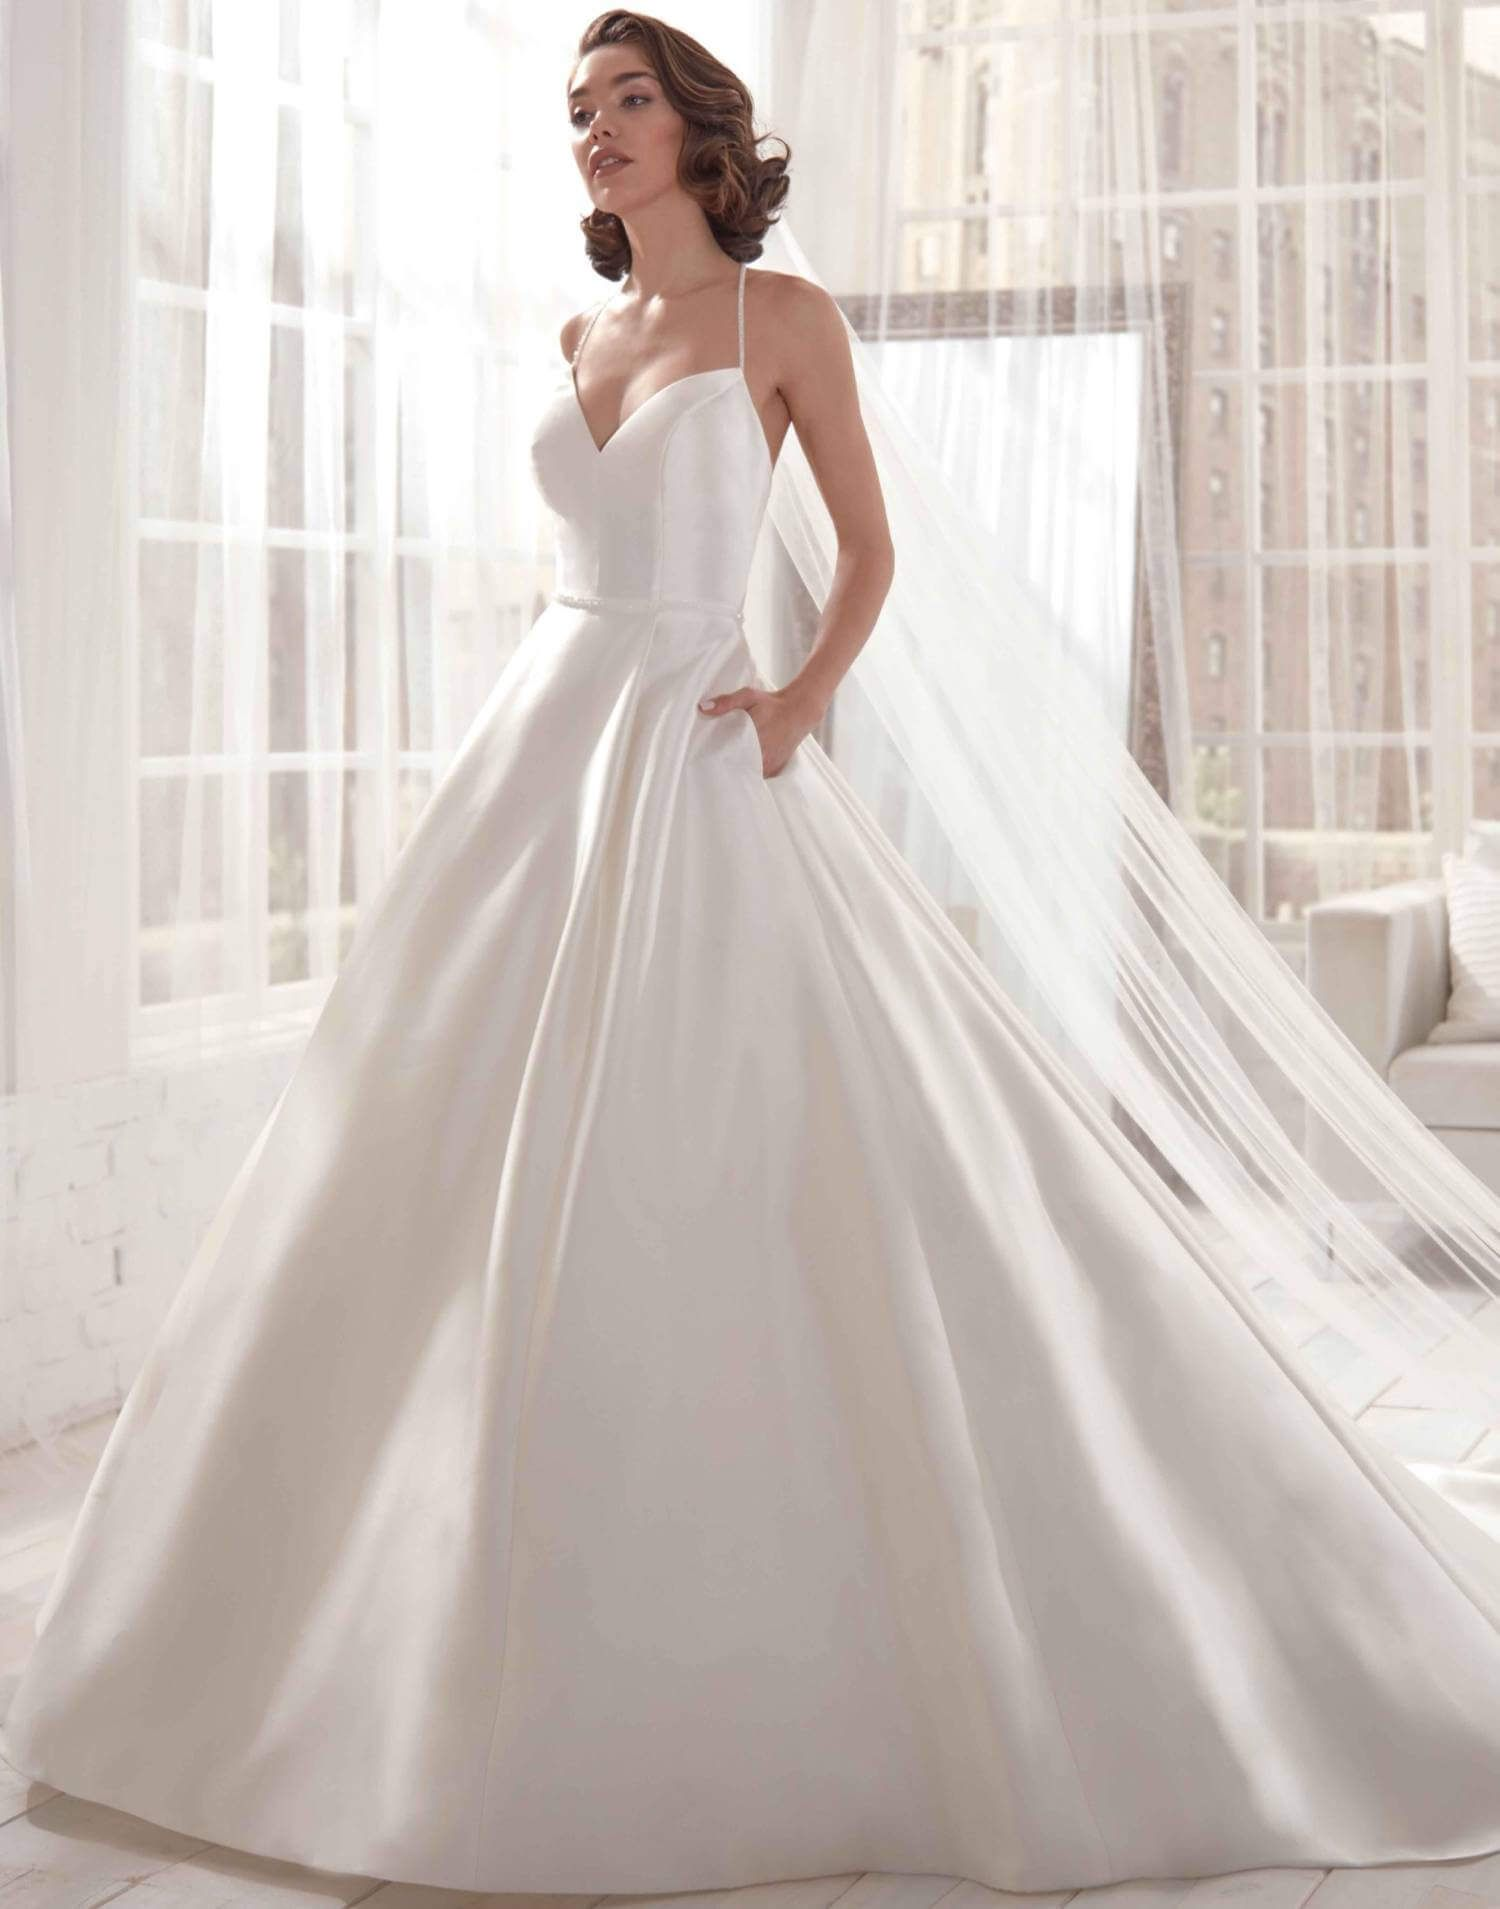 A Classic Wedding Dress Is Always In Style The Classic Wedding Dress Style Is The Embodiment Of T In 2020 Wedding Dresses Classic Wedding Dress Wedding Dress With Veil